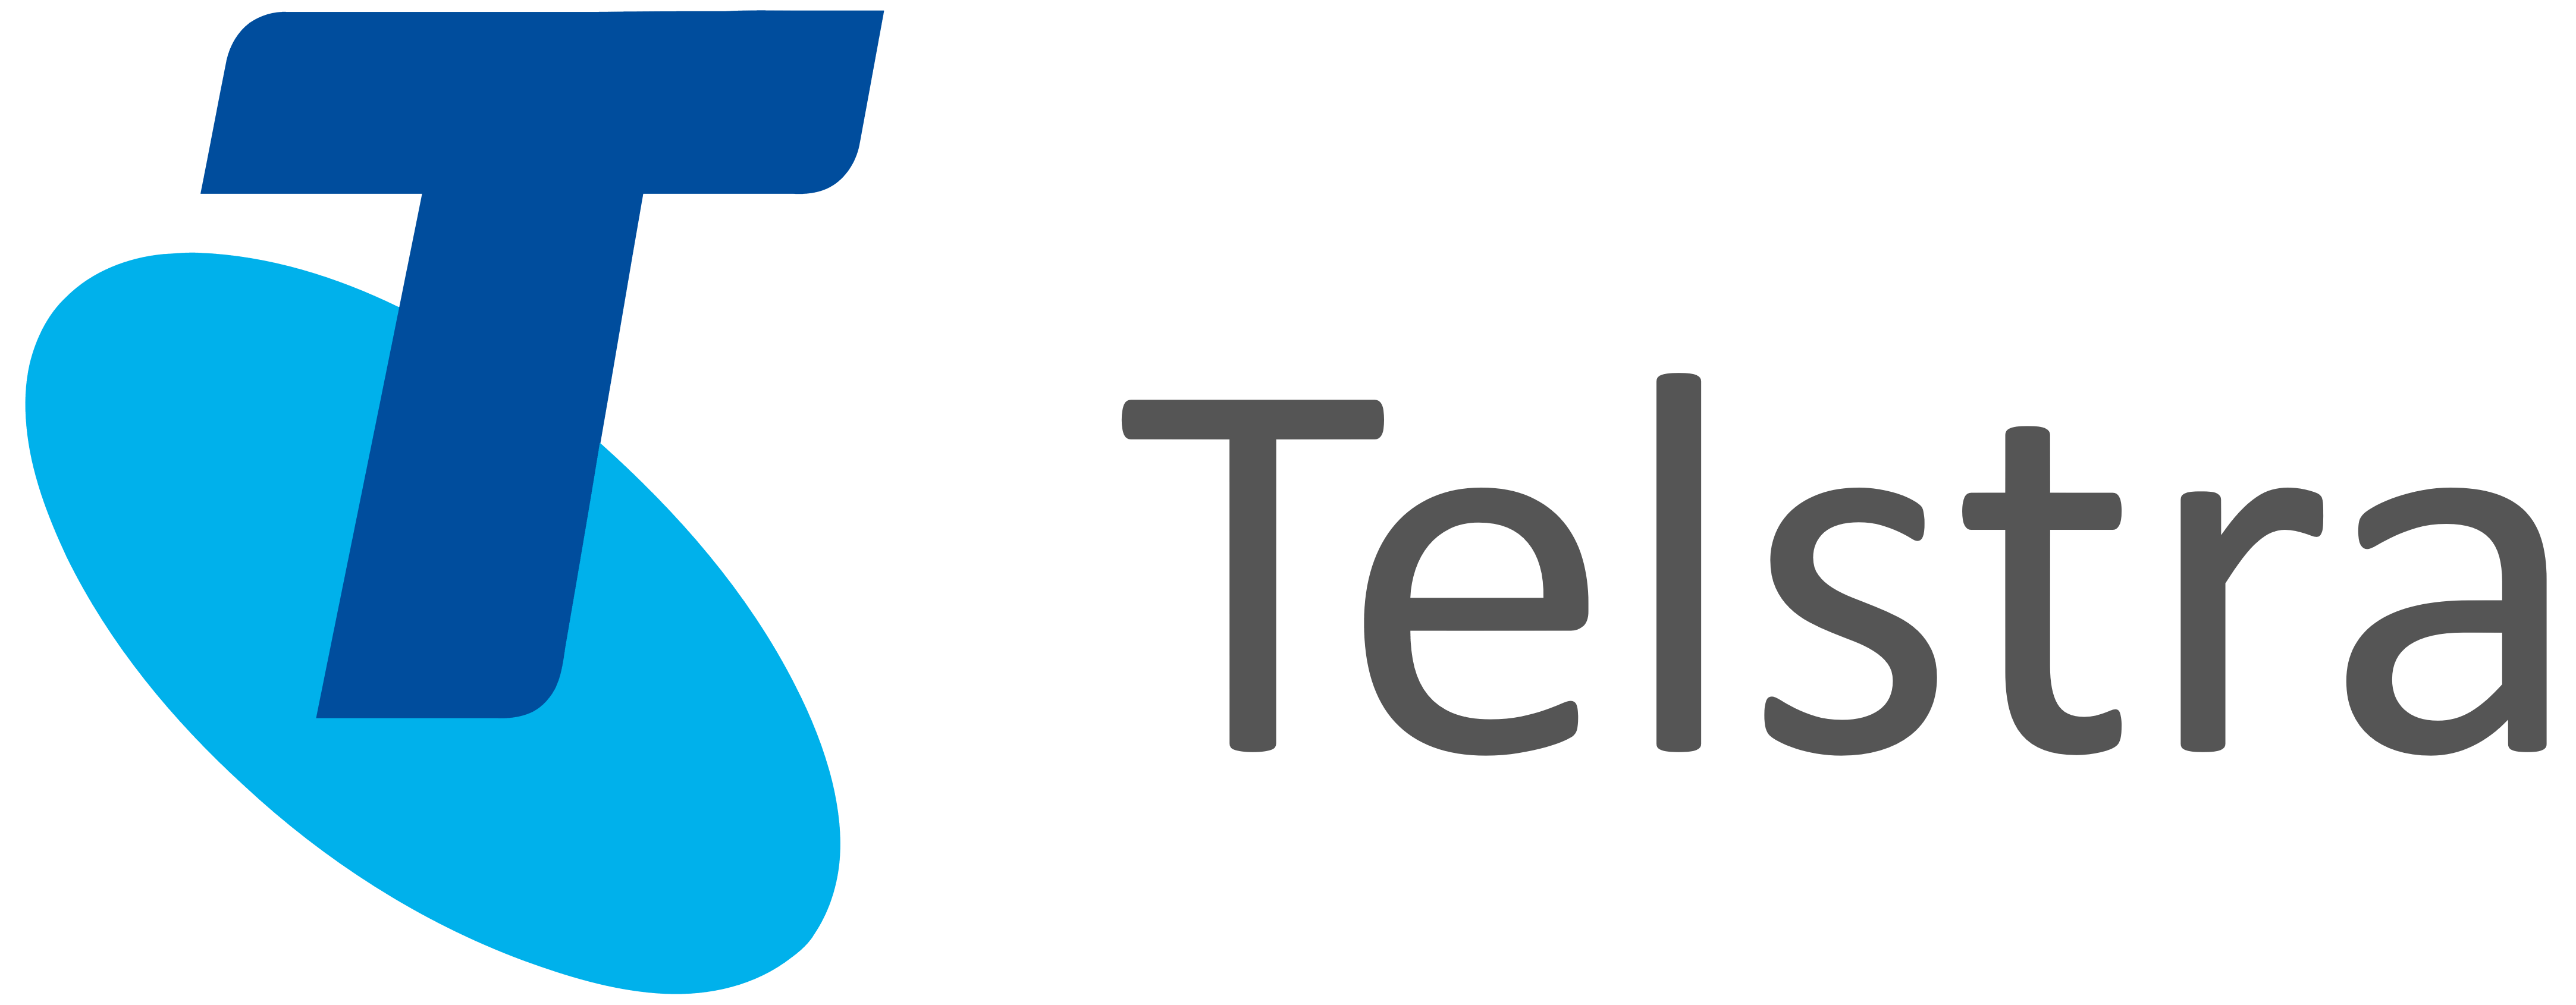 Telstra Australia Network Unlock